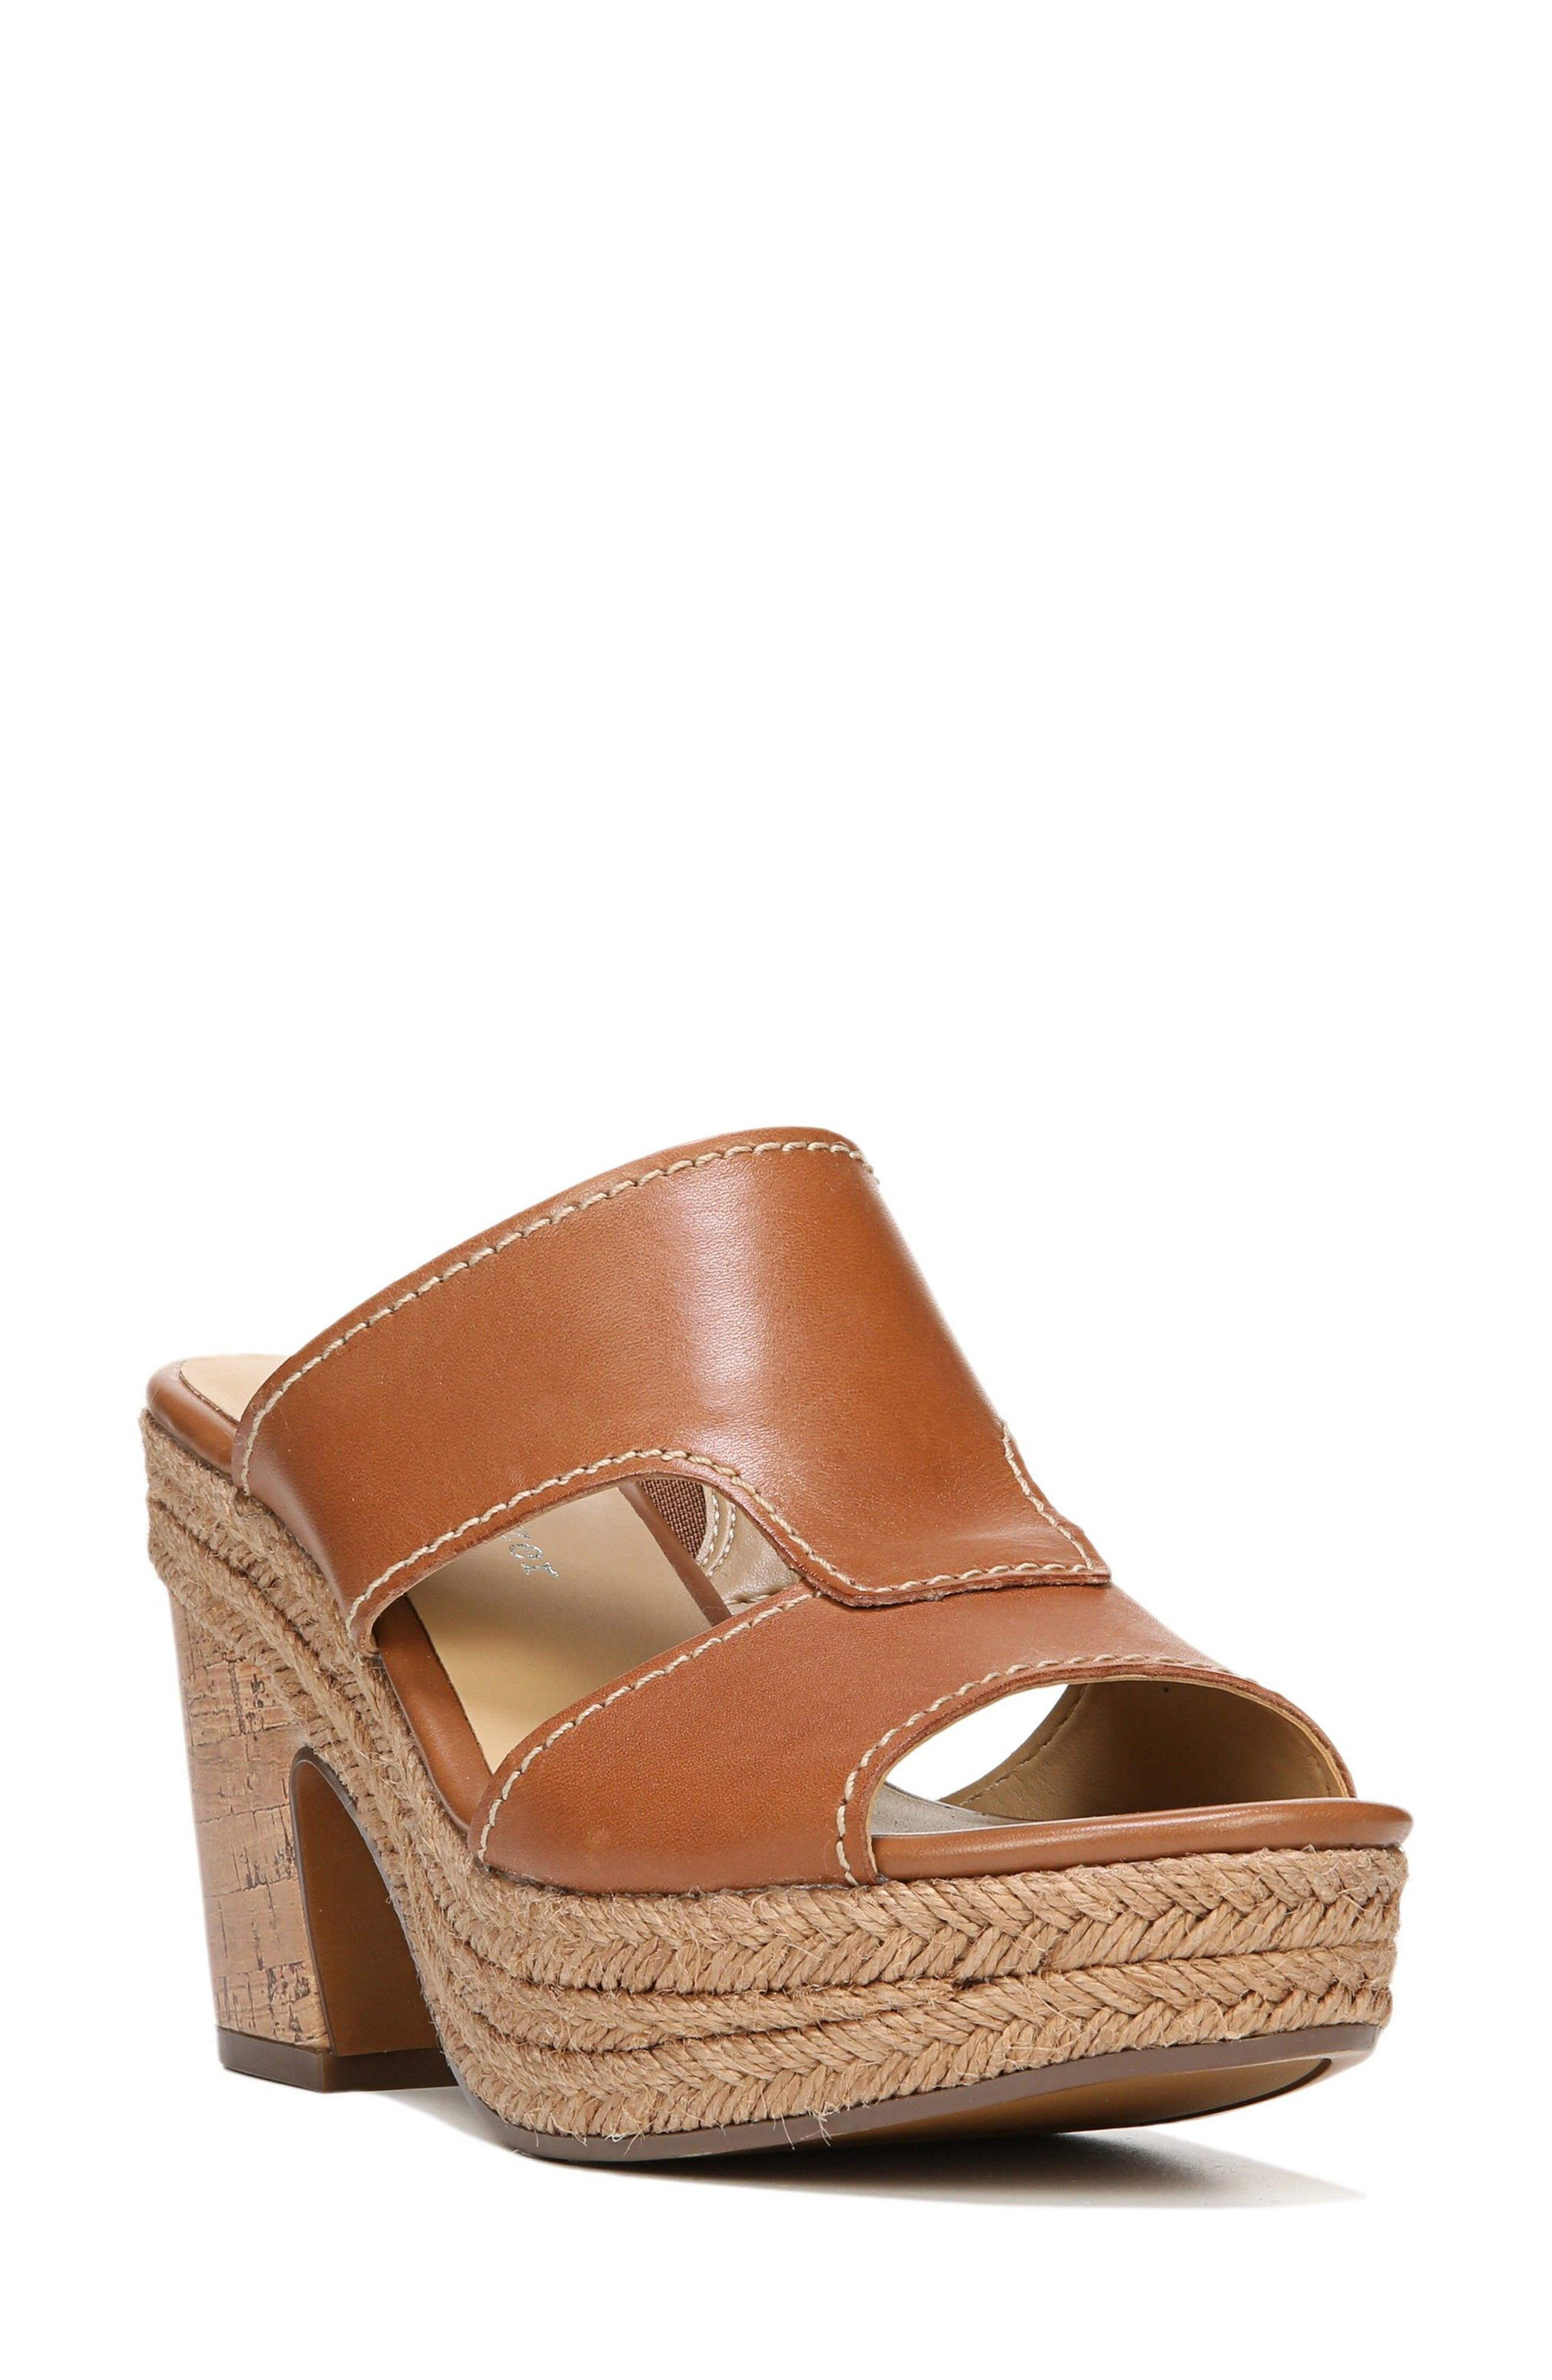 Evette Sandal,                         Main,                         color, 200